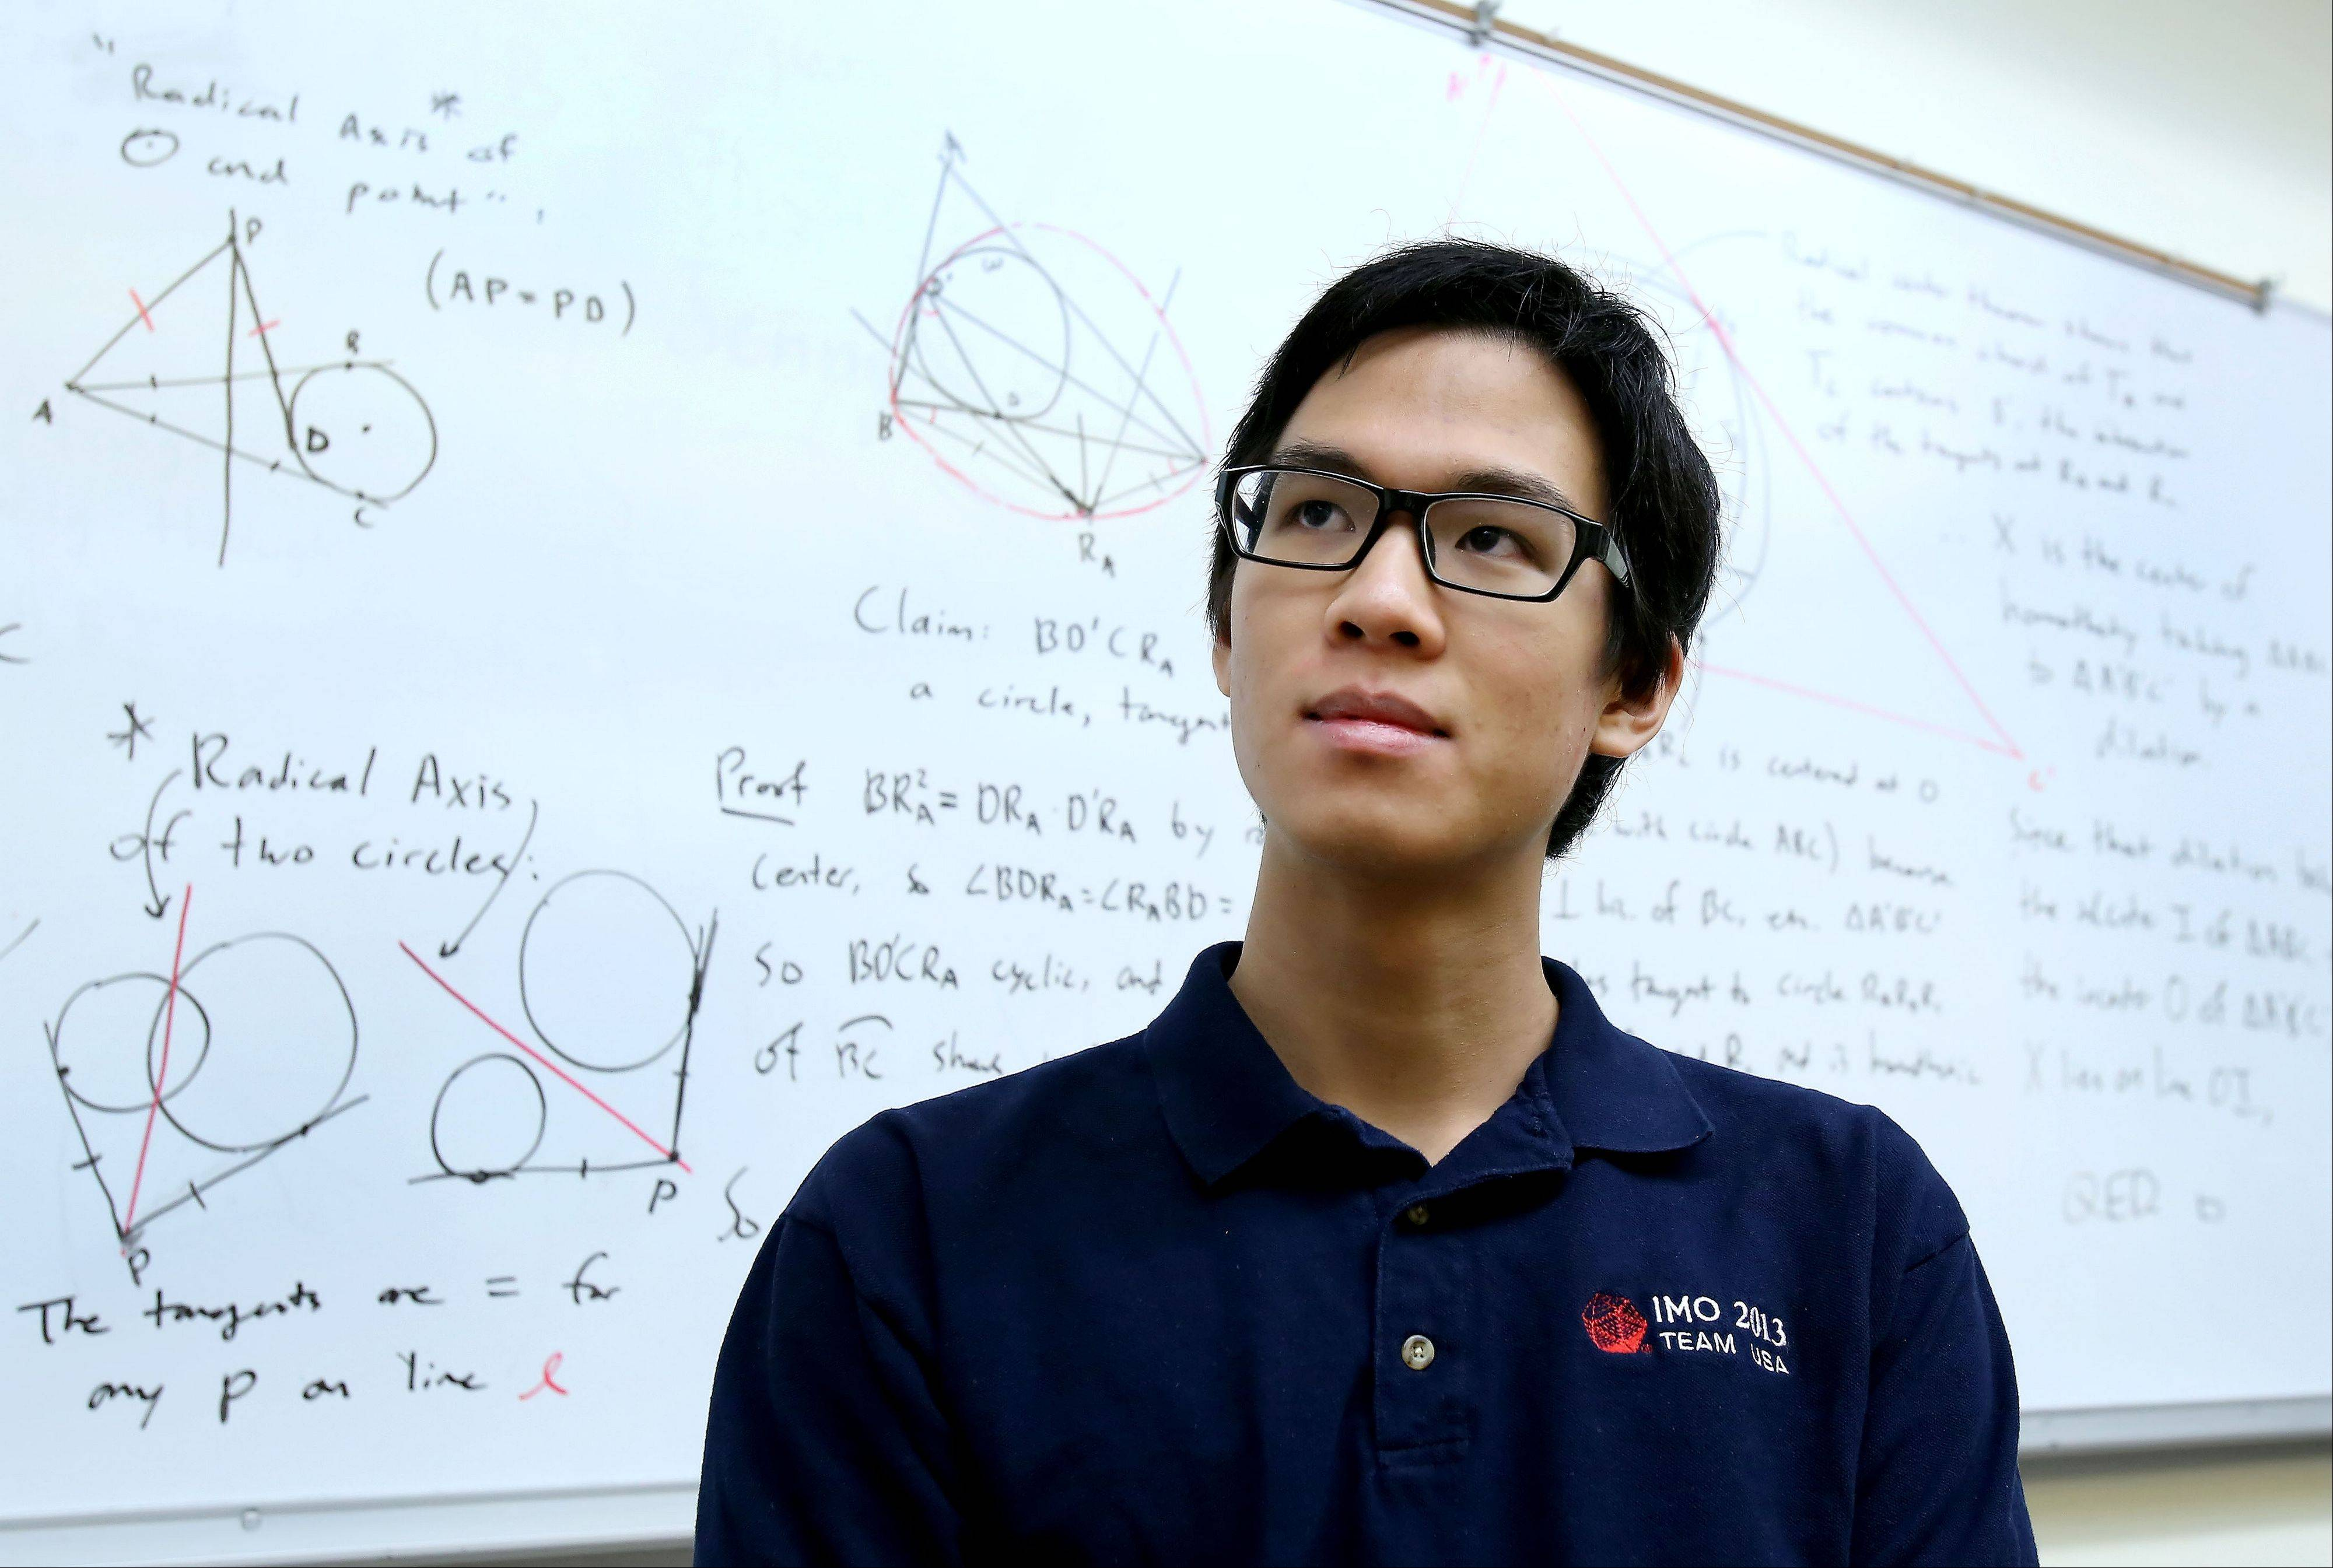 James Tao, a senior at the Illinois Mathematics and Science Academy in Aurora, hopes to attend MIT or Harvard. While some see math as logical and static, James said it's actually all about creativity.